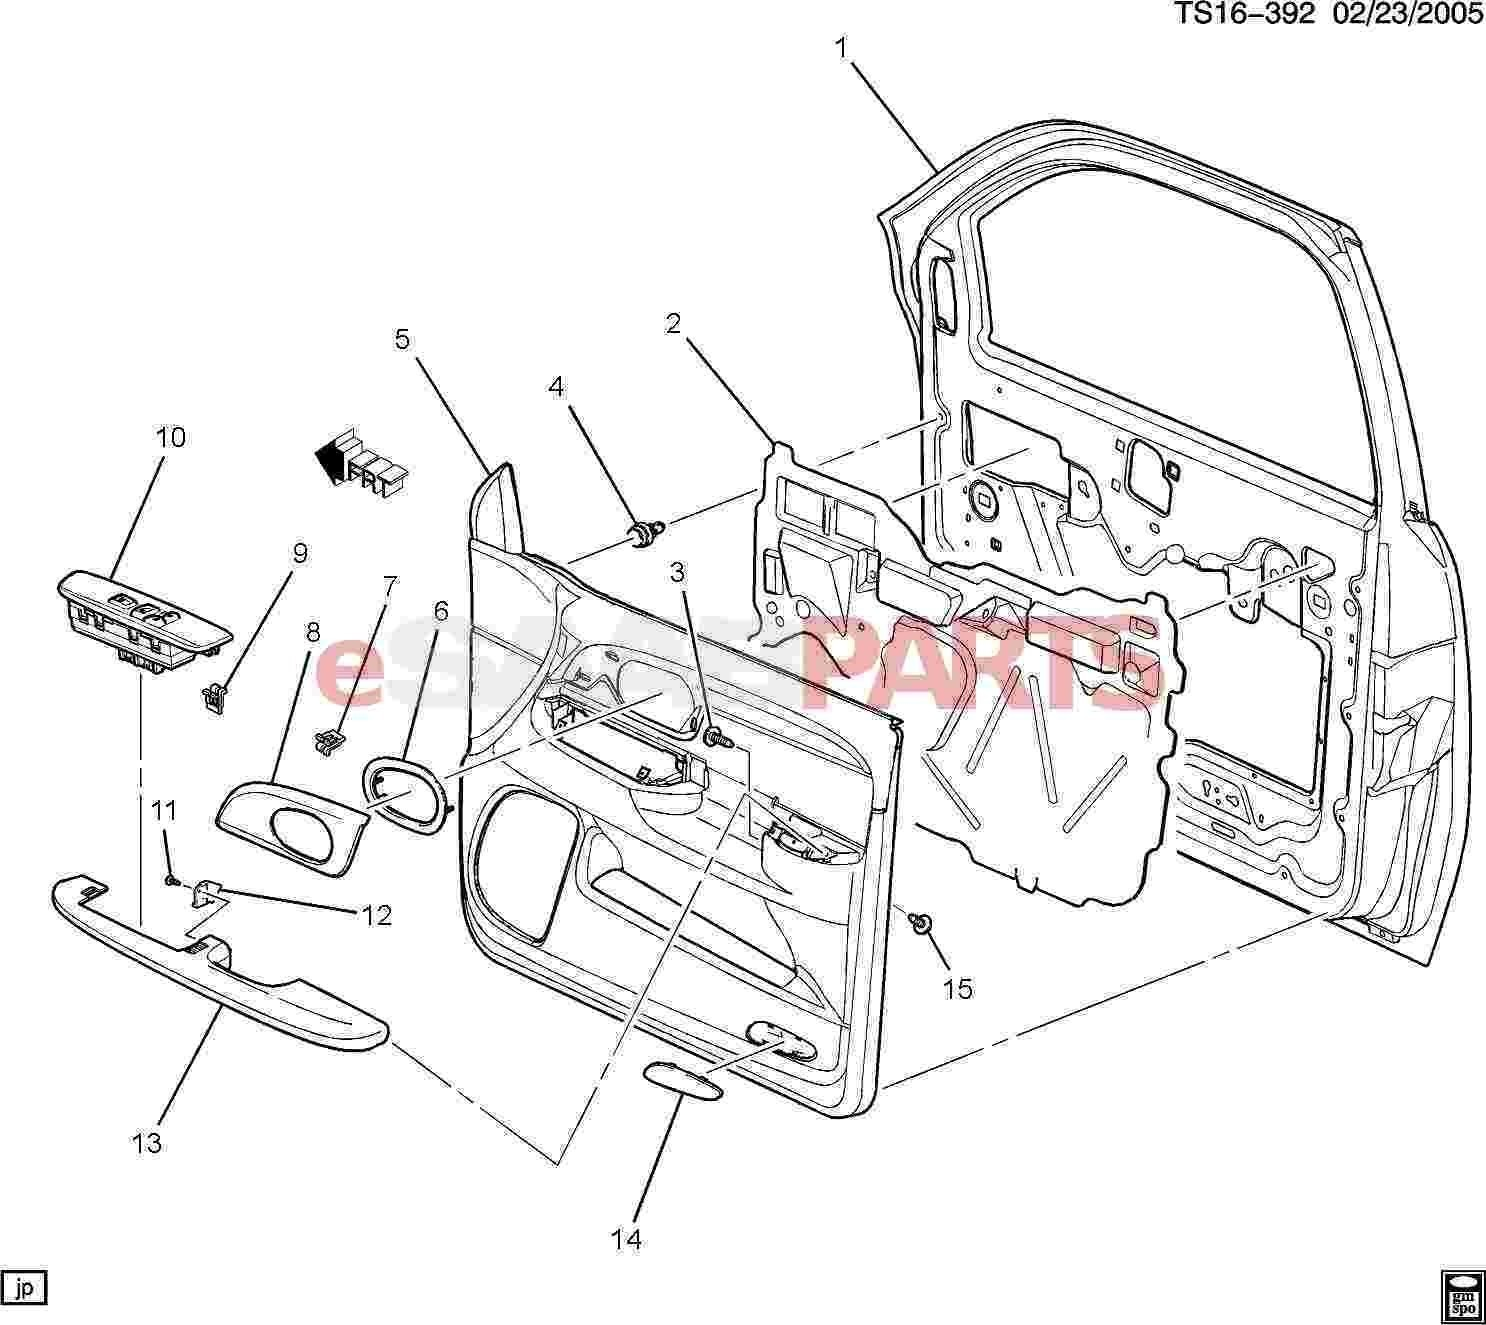 Car Parts Diagram Suspension Diagram Parts Under A Car Diagram Car Engine Parts ] Saab Bolt Of Car Parts Diagram Suspension Diagram Parts Under A Car Basic Diagram Car Parts ] Saab Screw